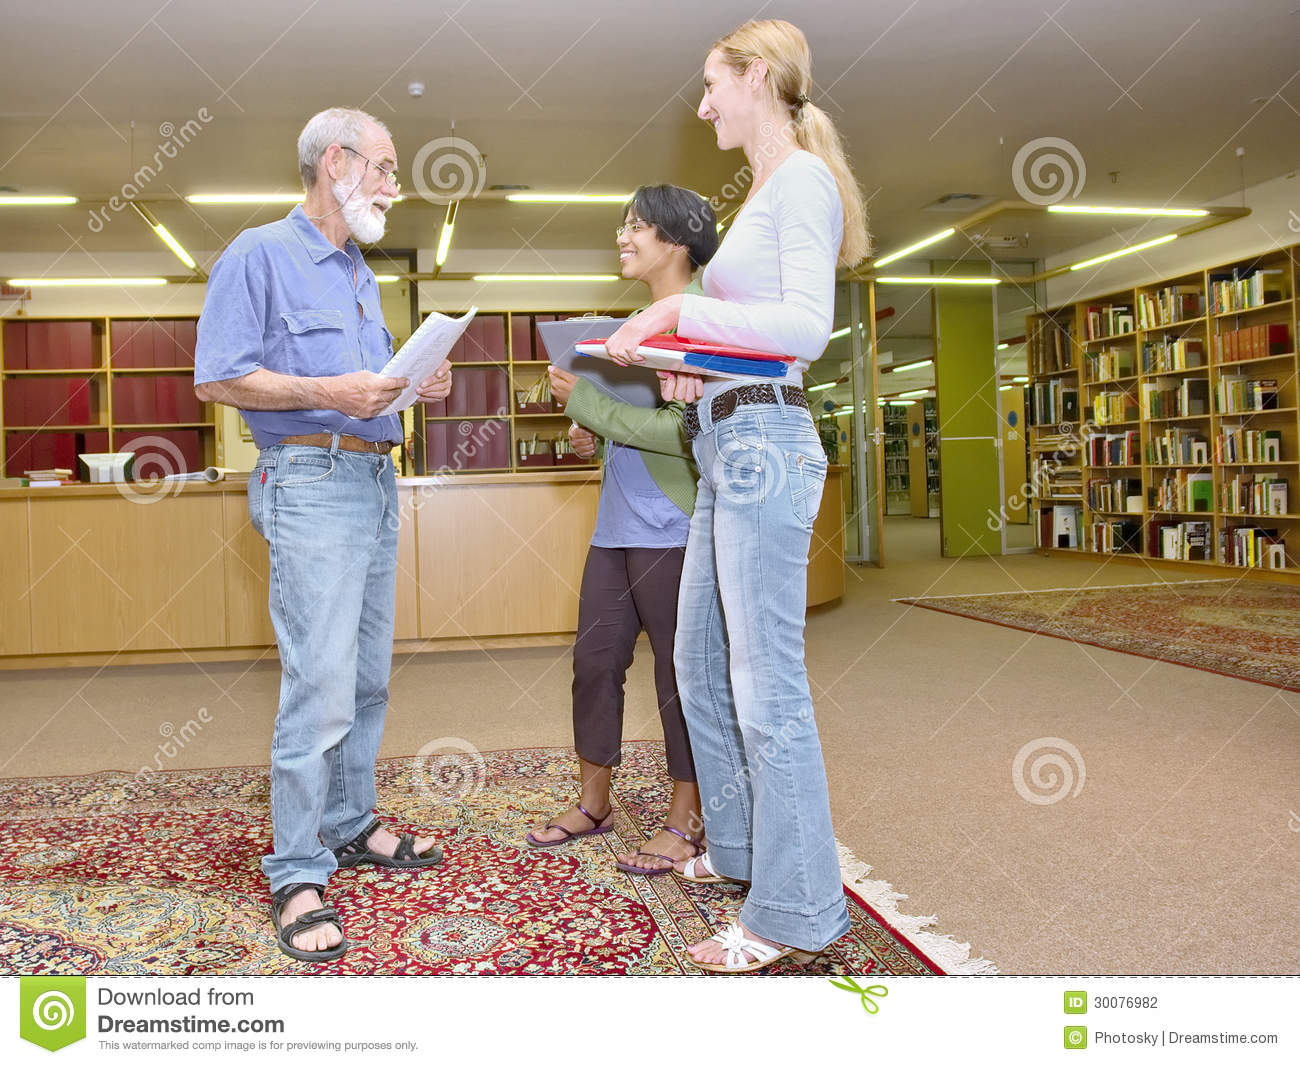 Multiracial group of friendly people chatting in library